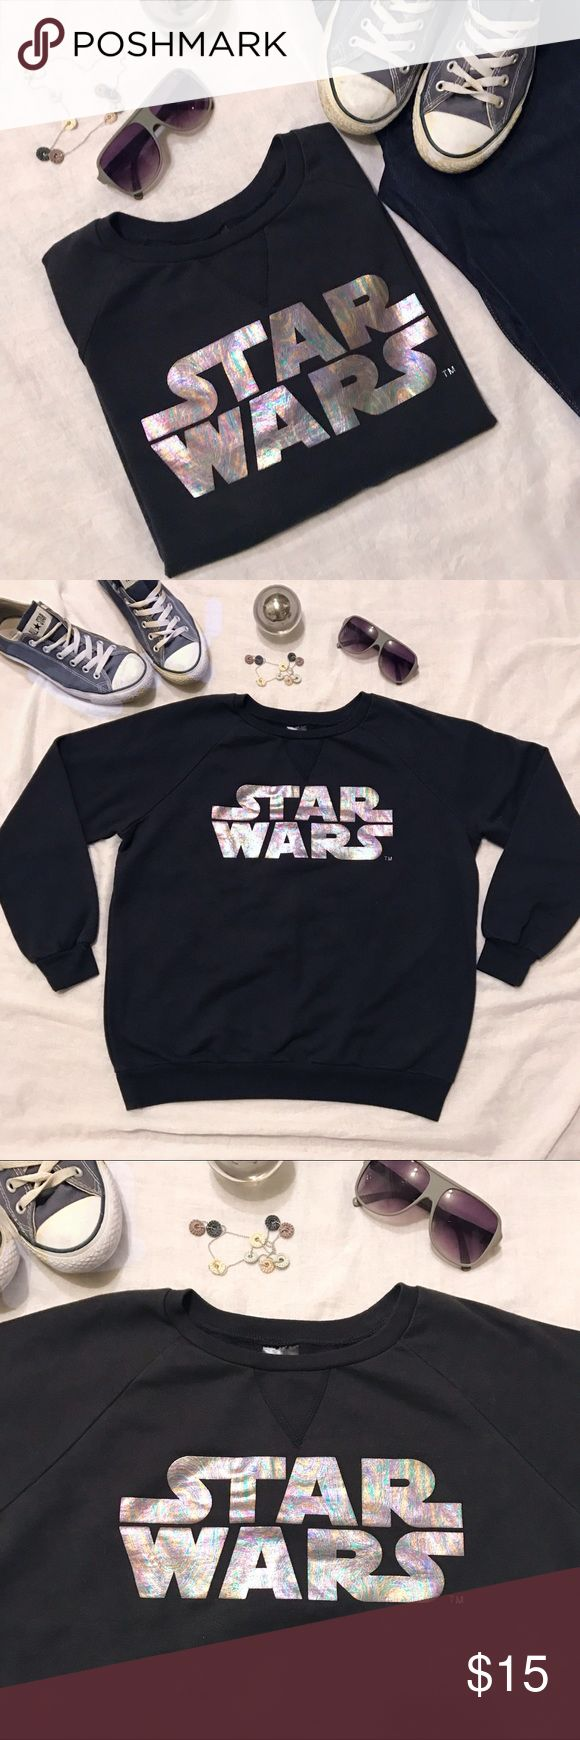 My r2 bb8 heart design is now a t shirt you can buy http tee pub - Star Wars Sweatshirt